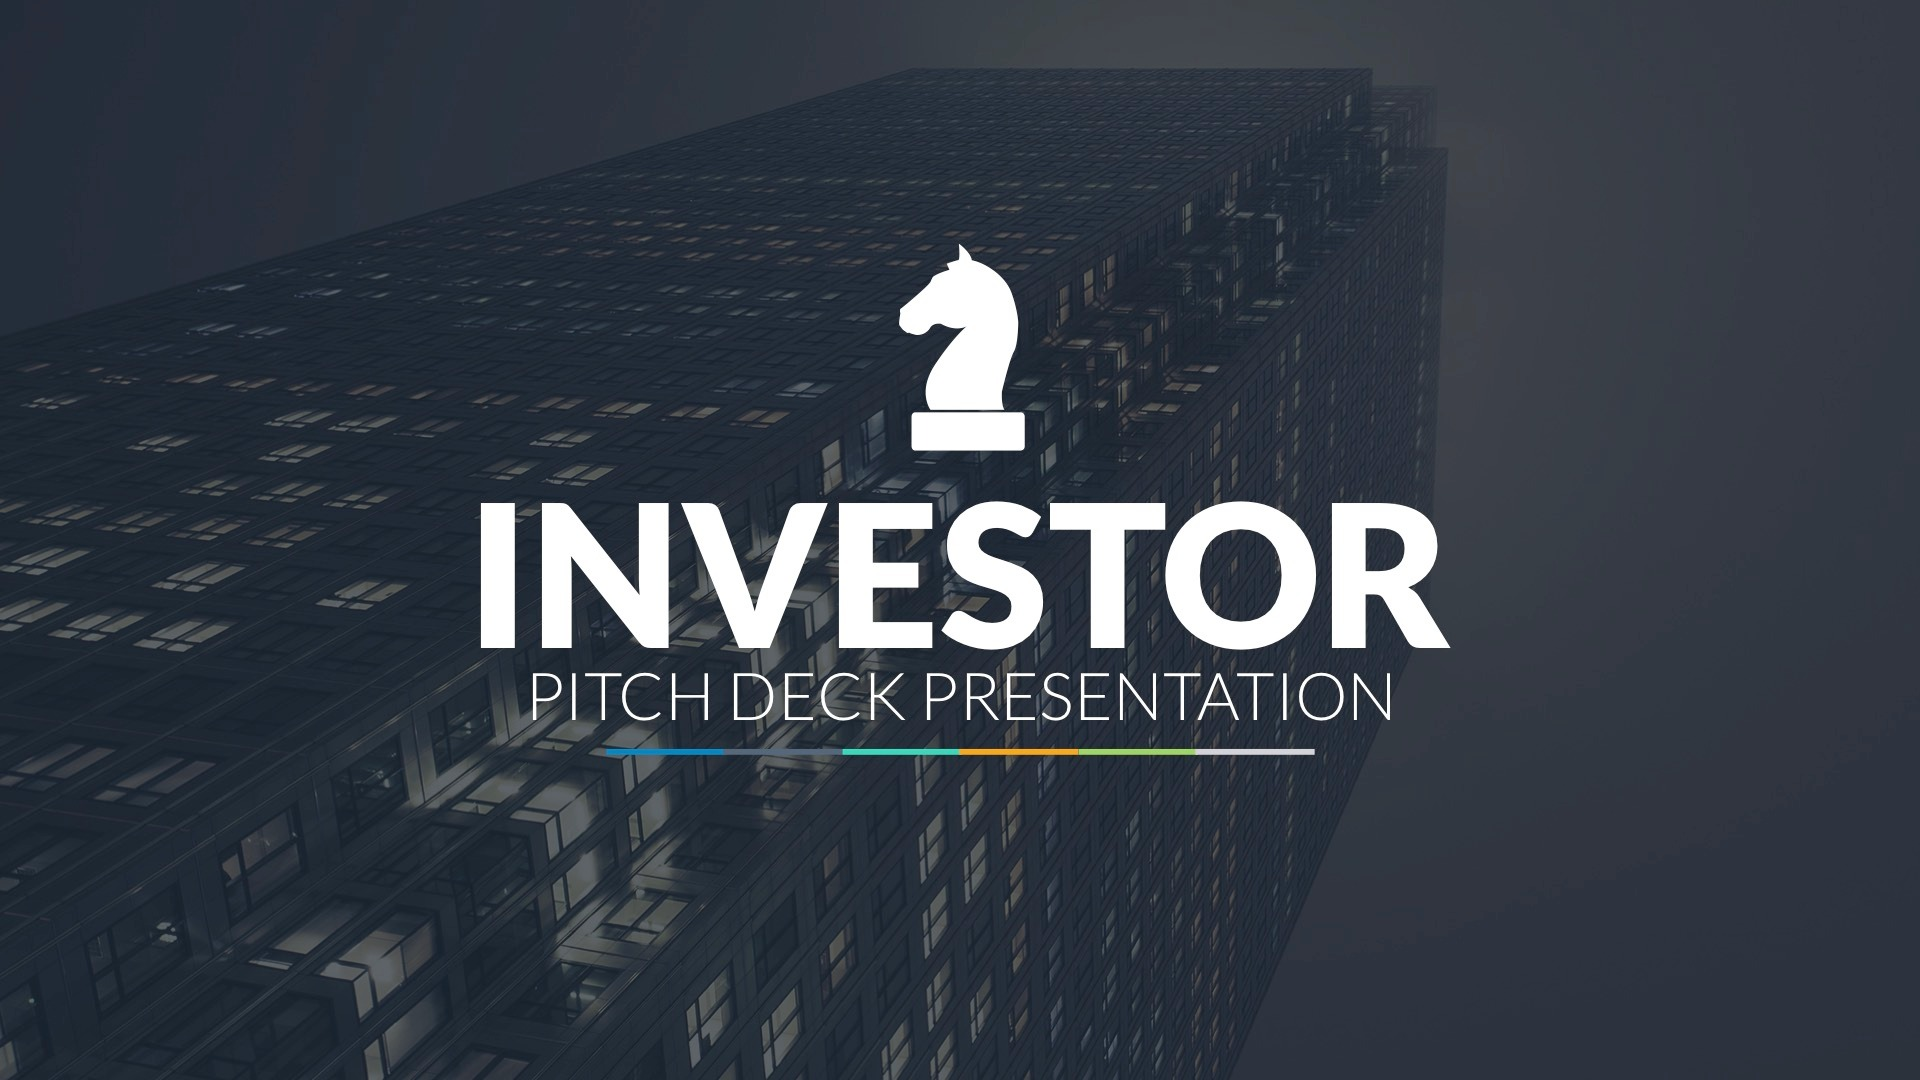 investor pitch deck powerpoint template by louistwelve design